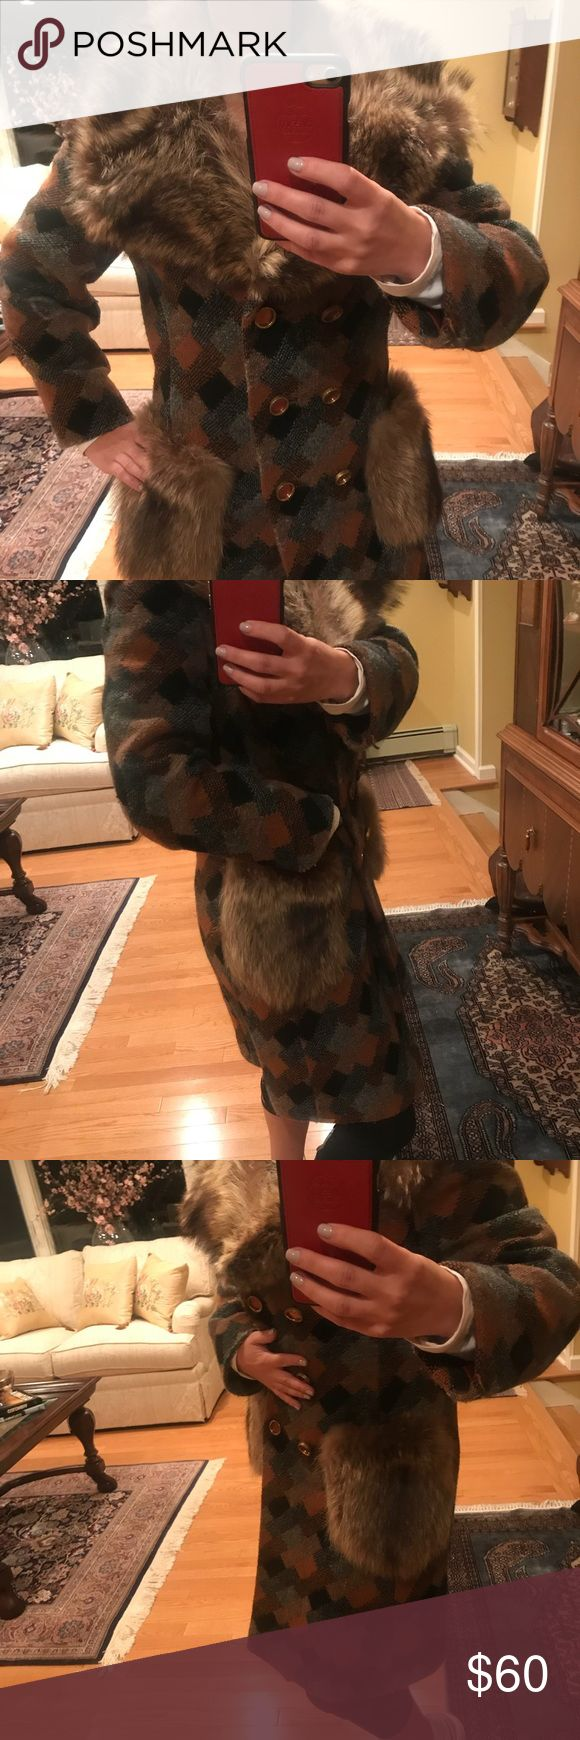 Vintage GORGEOUS Coat! Bought this beauty at a vintage trade show in NYC and it is stunning.  Keeps you warm with gorgeous fur collar and pockets. A mix of brown, gray and black wool patterns.   Made in the 🇺🇸. How rare is that nowadays!   This is such a gem and I wore it a lot when I lived in NY. No need for it now and no room 😑 Authentic Original Vintage Style Jackets & Coats